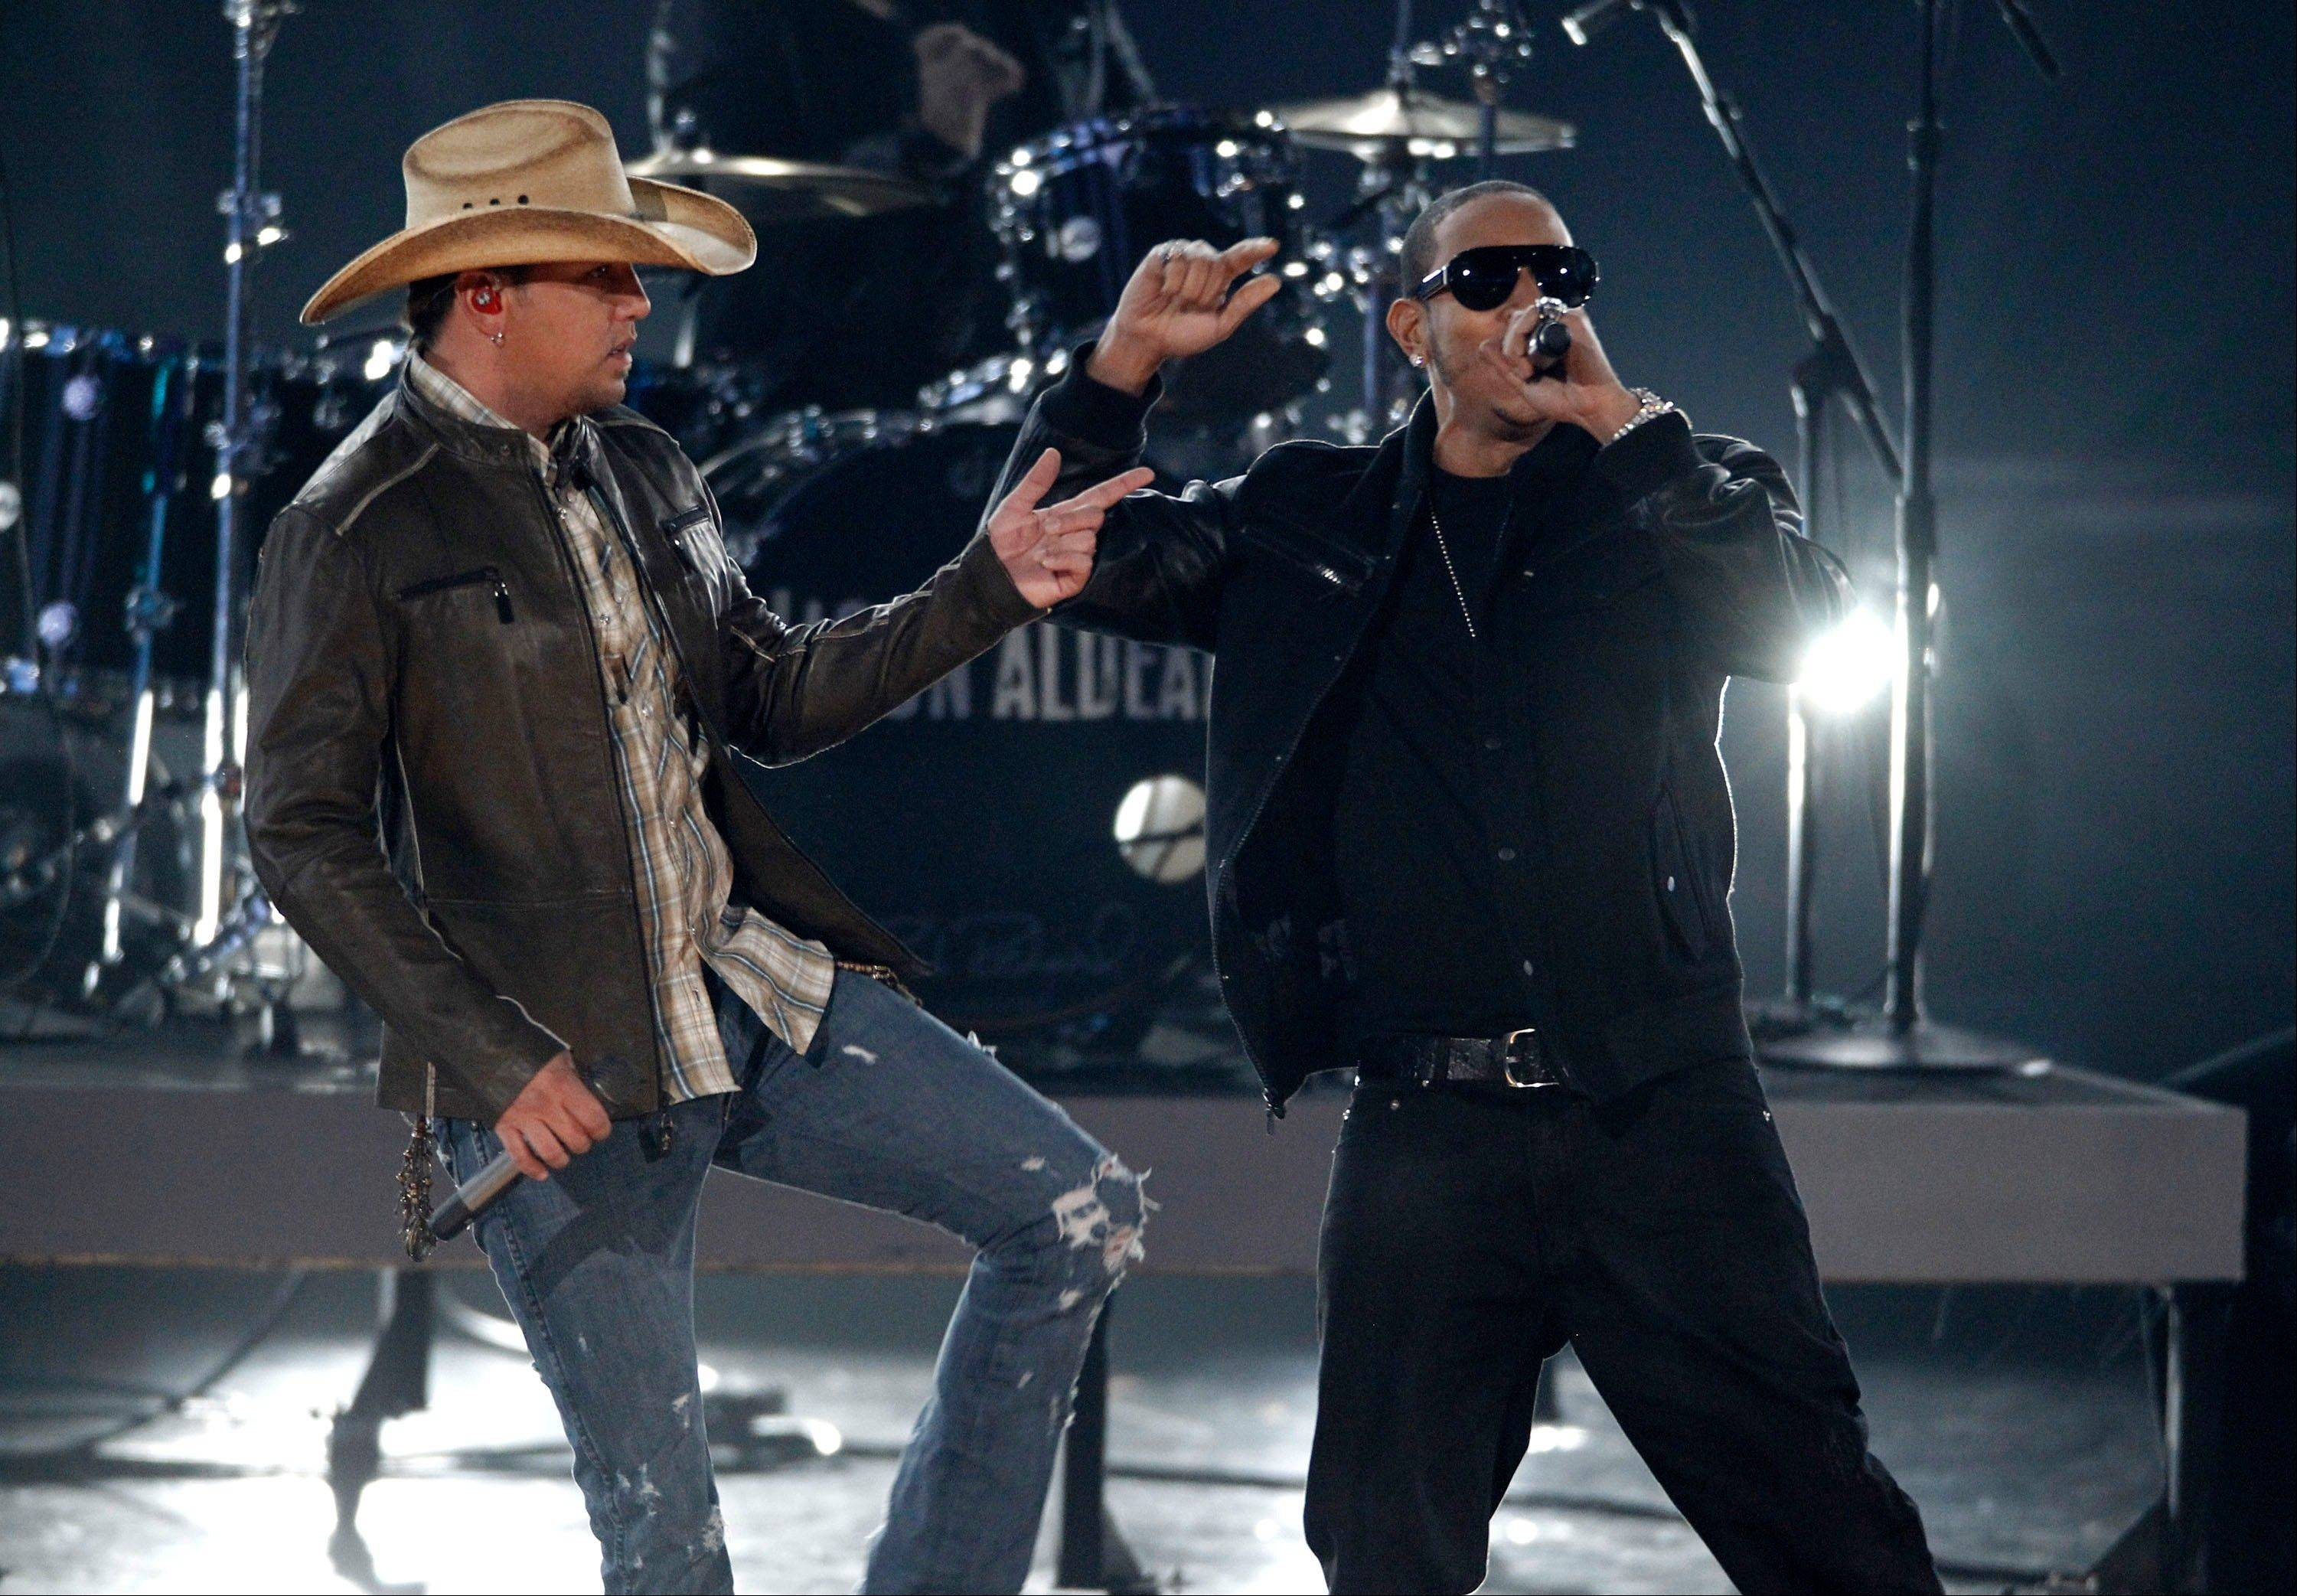 Jason Aldean, left, and Ludacris perform Wednesday at the Grammy Nominations Concert in Los Angeles. (